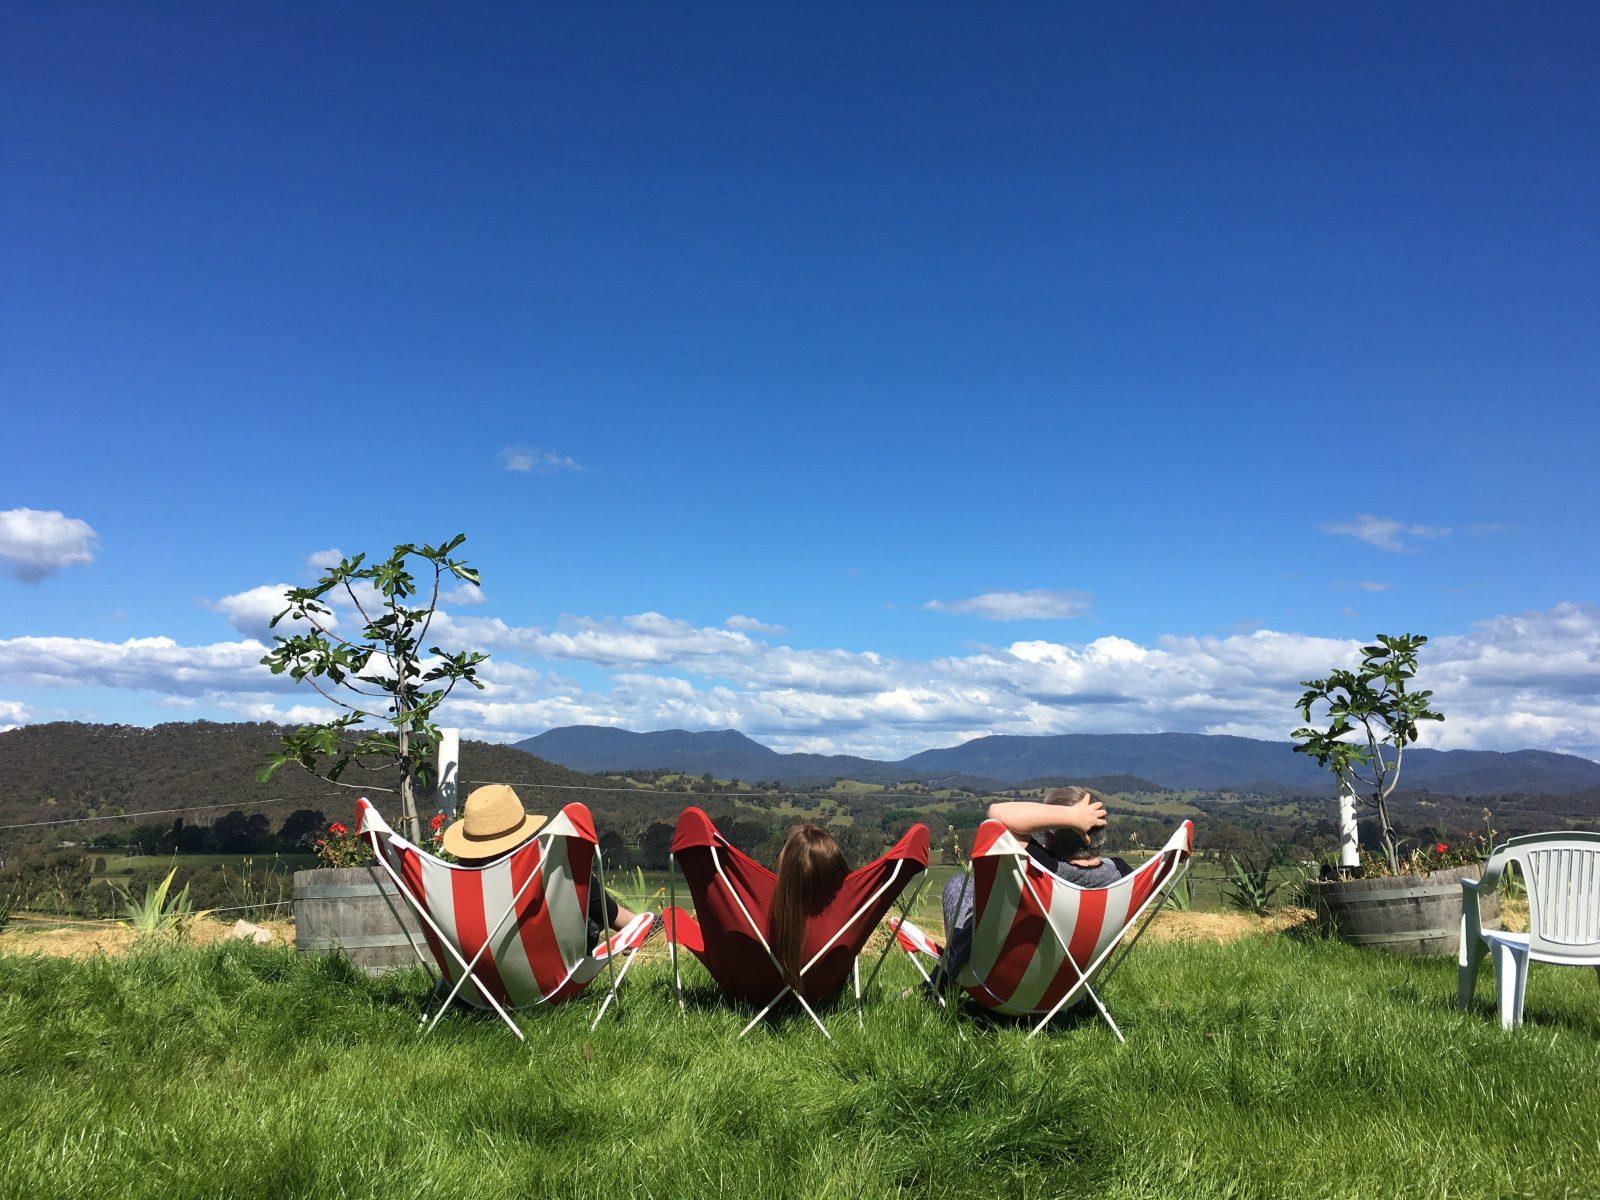 Enjoying the sun at Red Feet Wines